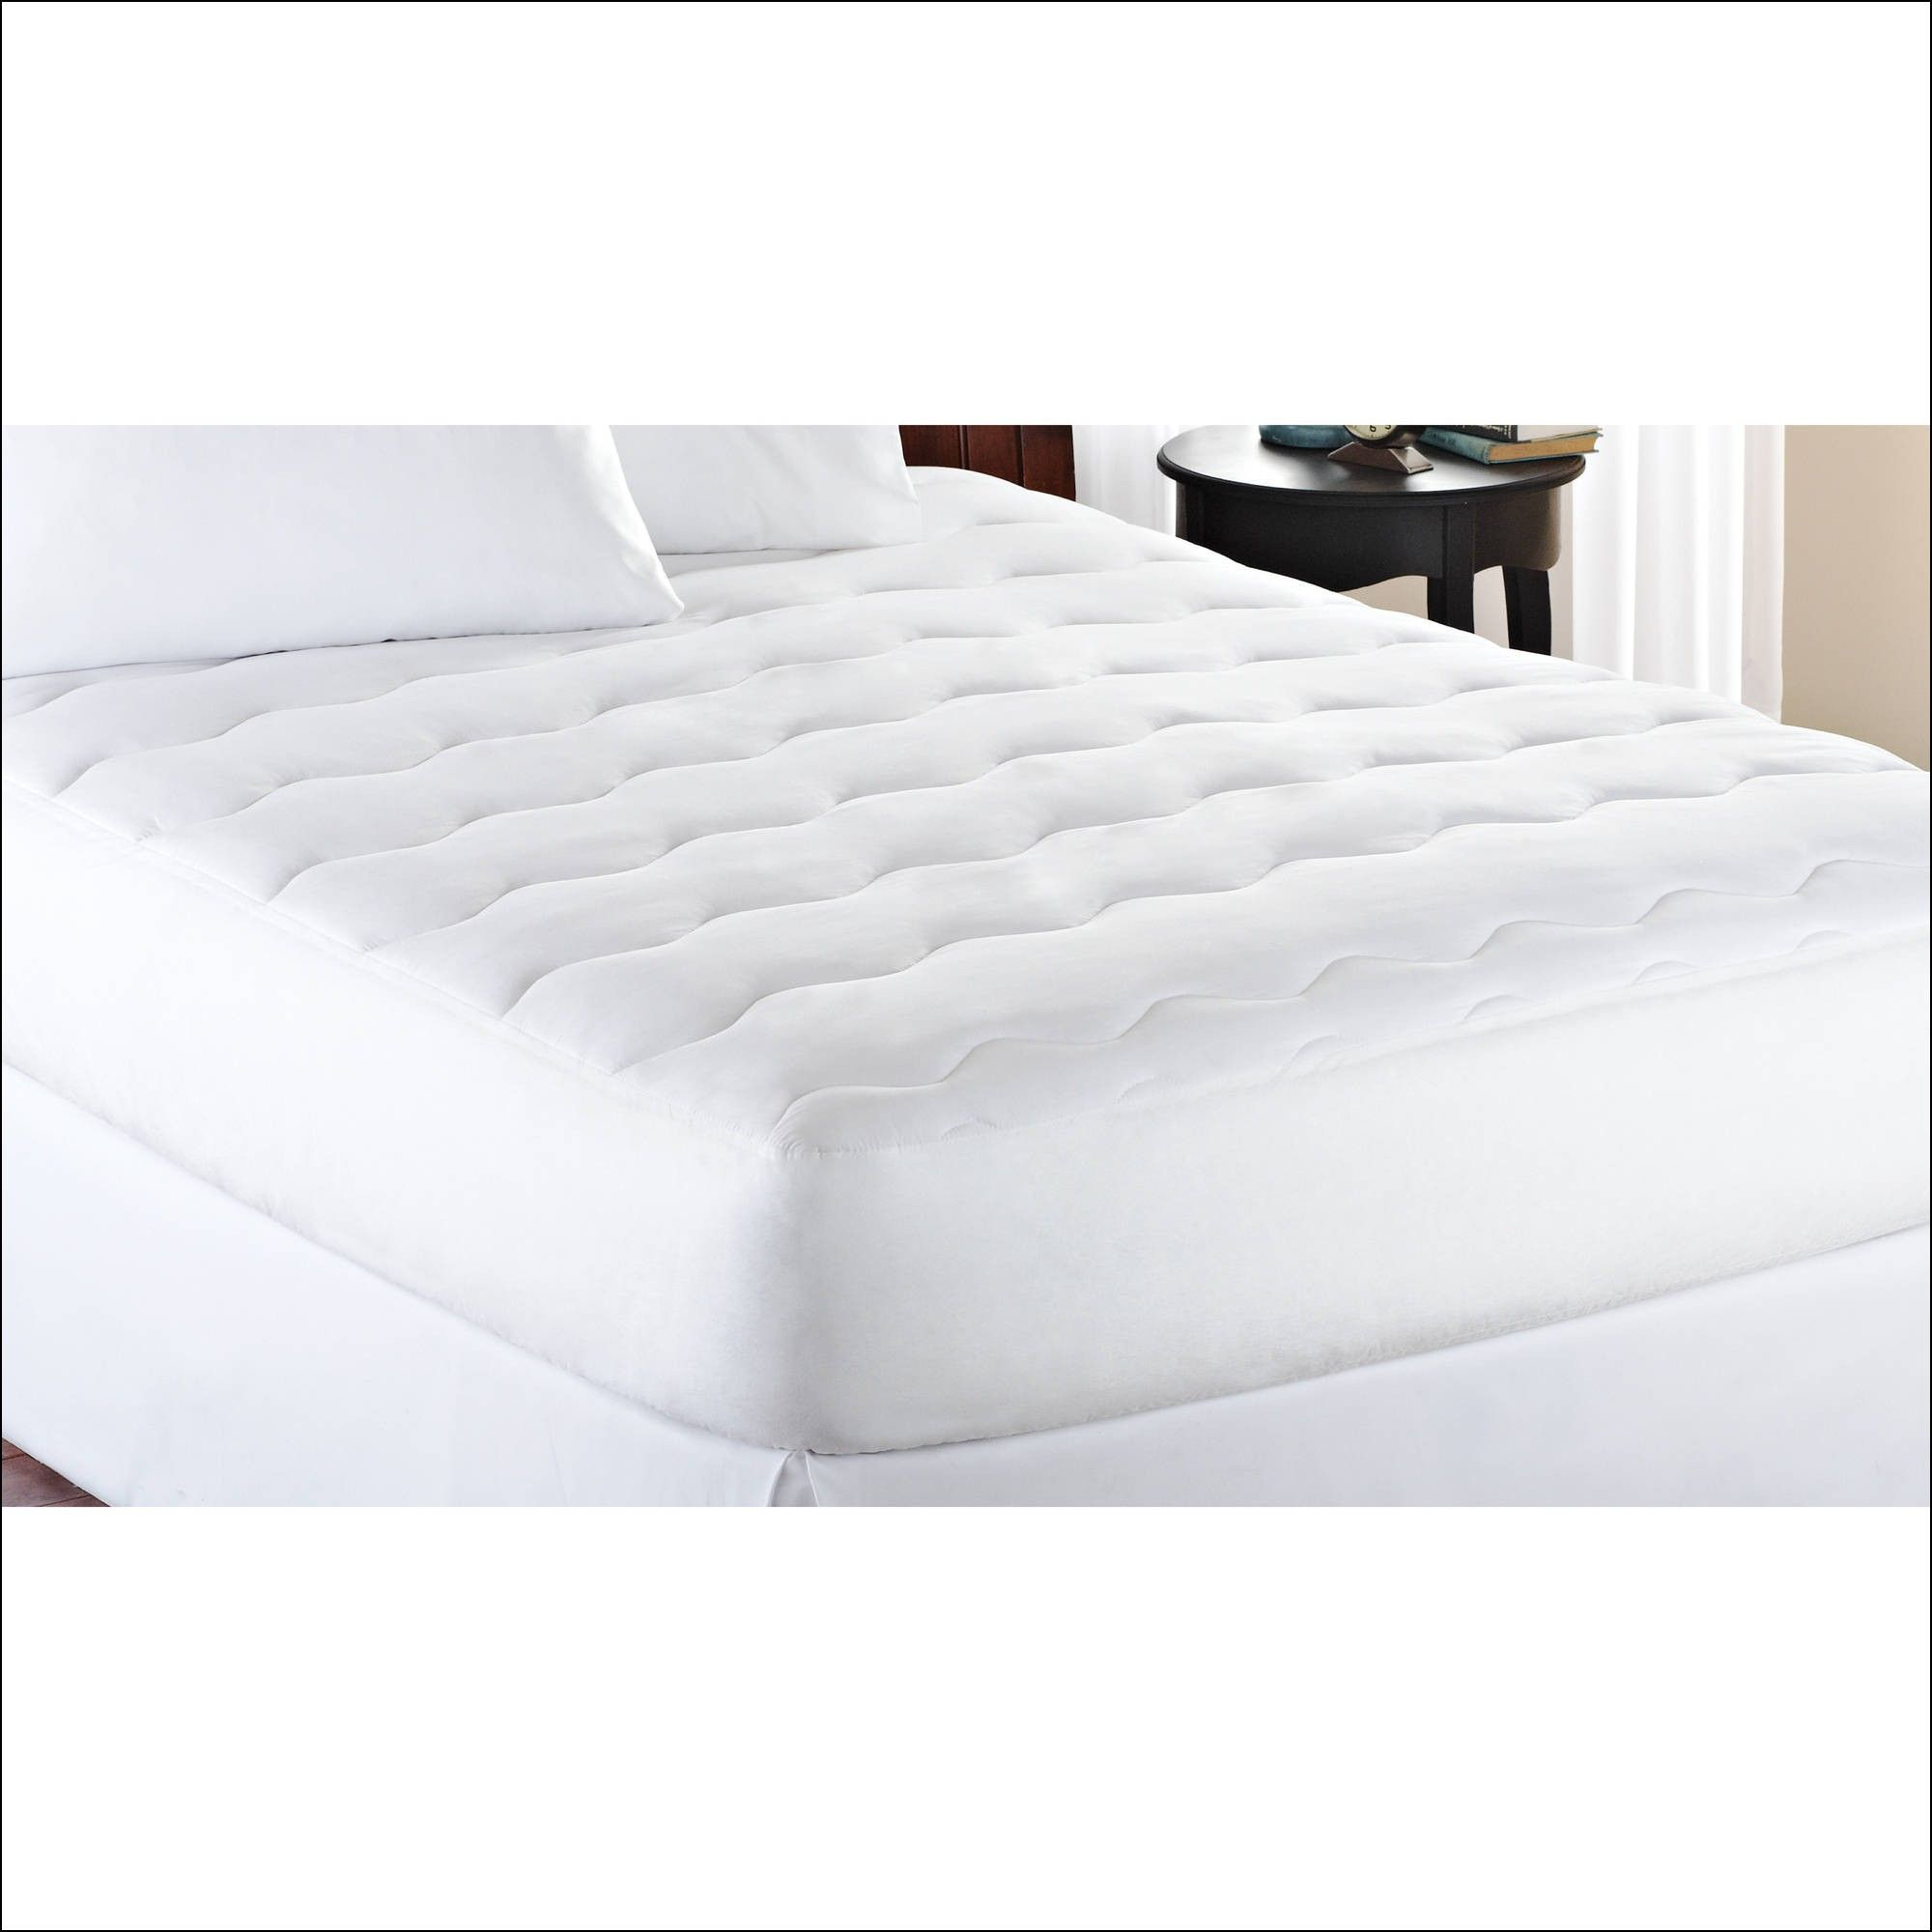 img htm naturals topper top set mattresses day extravagant firmness delivery select next sticker mattress pillow c divan